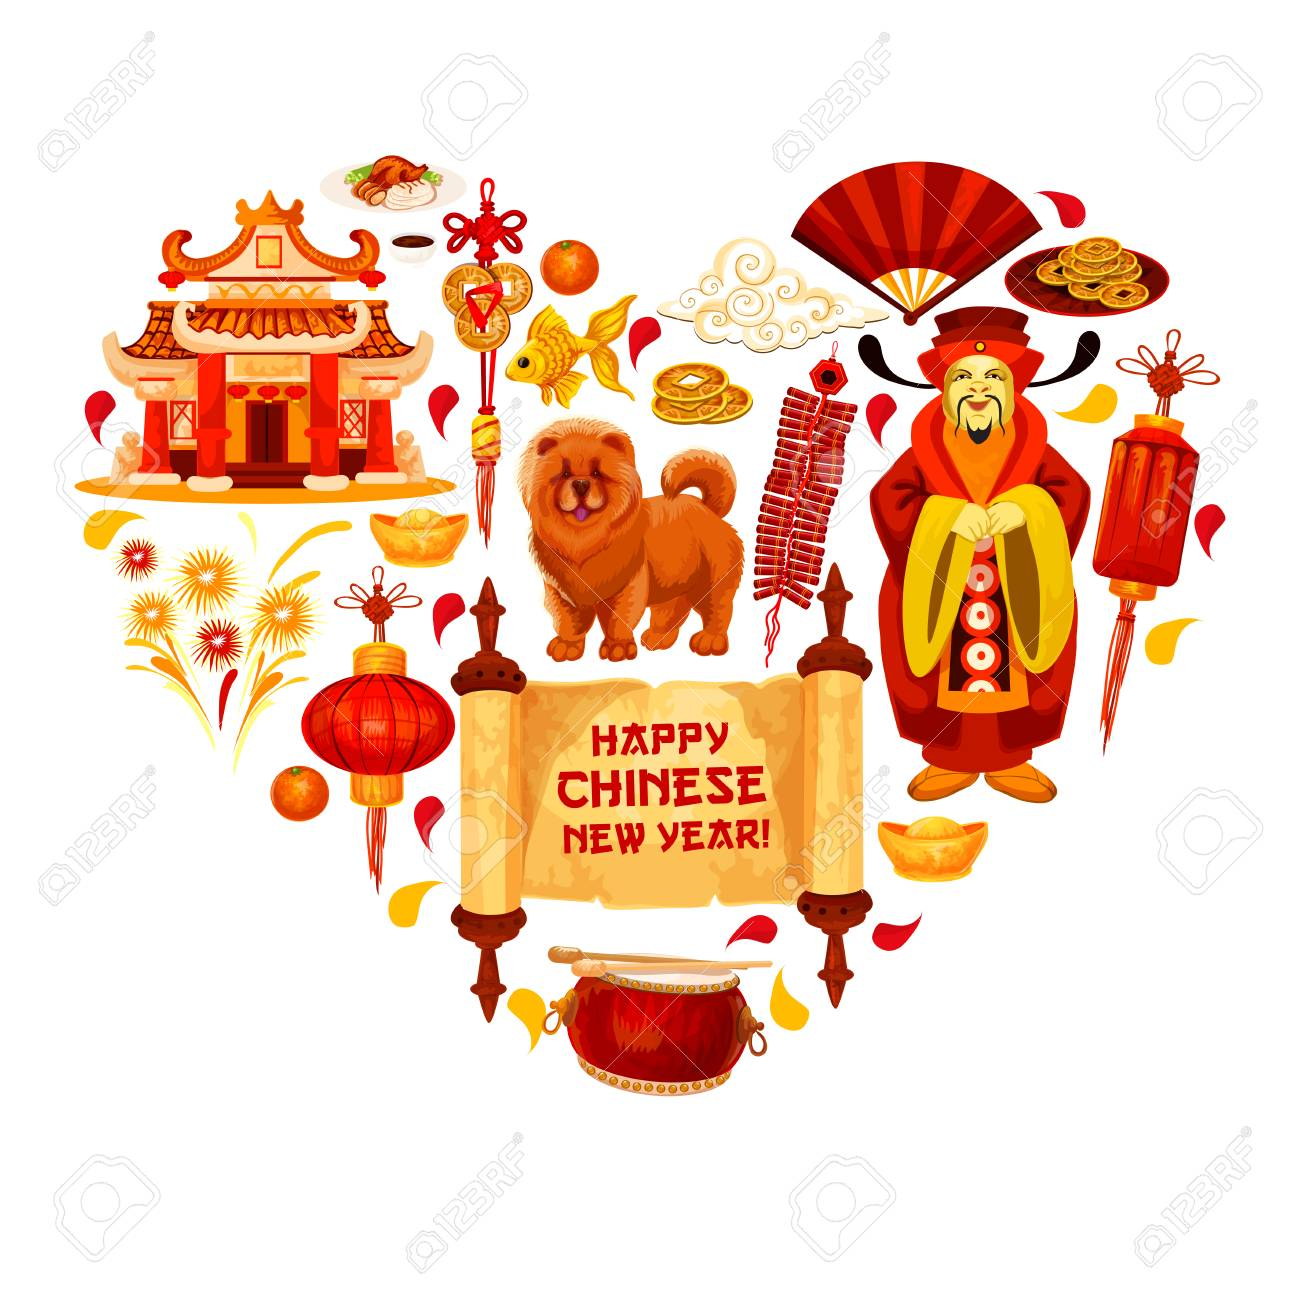 Happy chinese new year wish hieroglyph and traditional lunar happy chinese new year wish hieroglyph and traditional lunar year celebration symbols for greeting card design buycottarizona Images